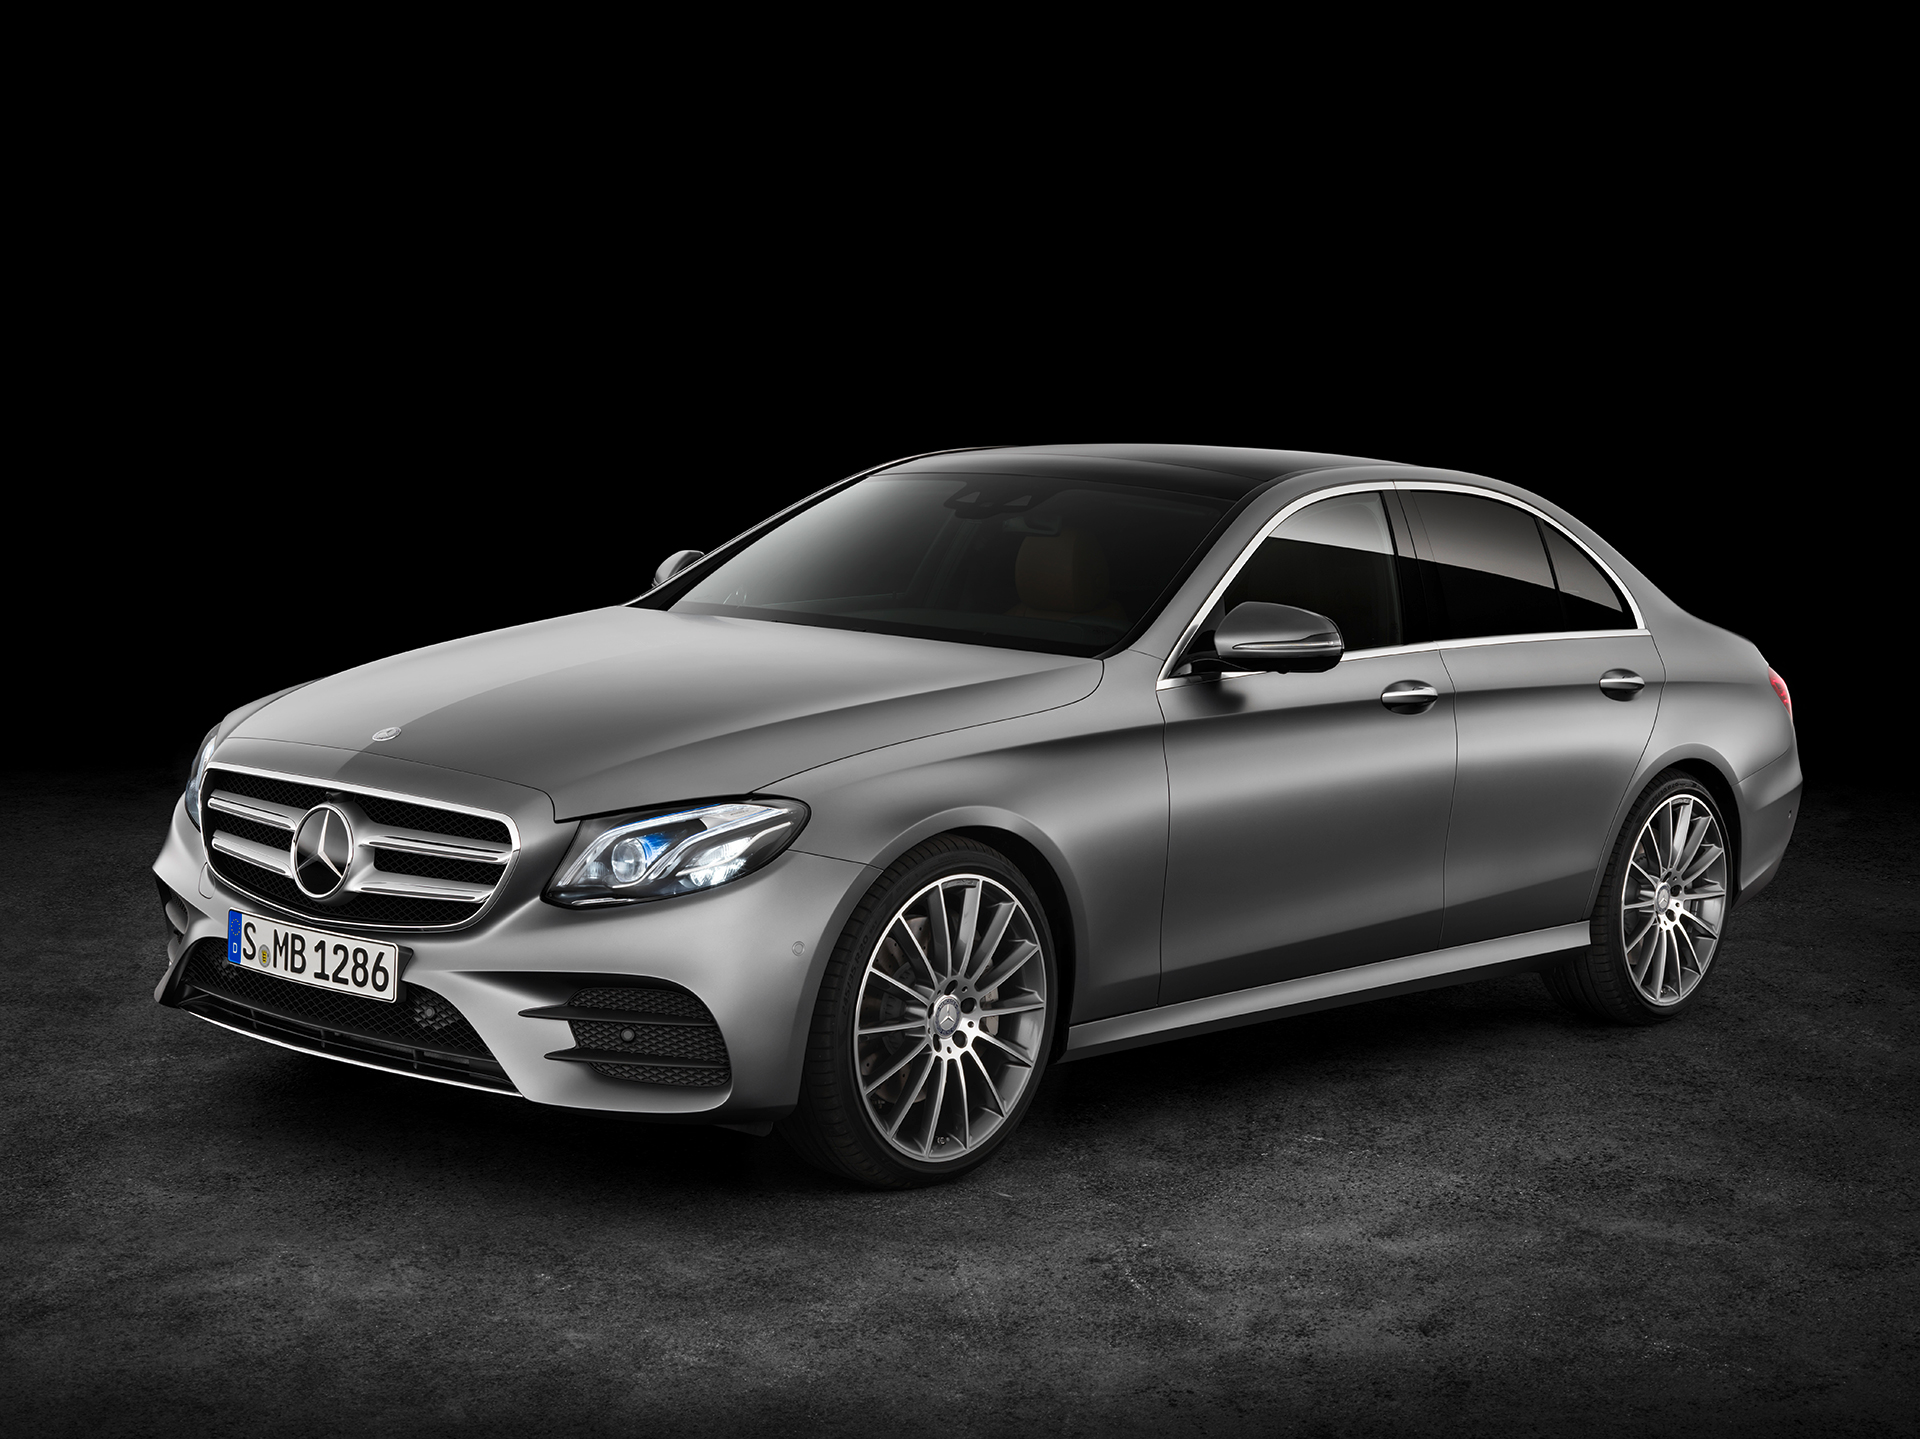 Mercedes-Benz E Class - 2016 - front side-face / profil avant